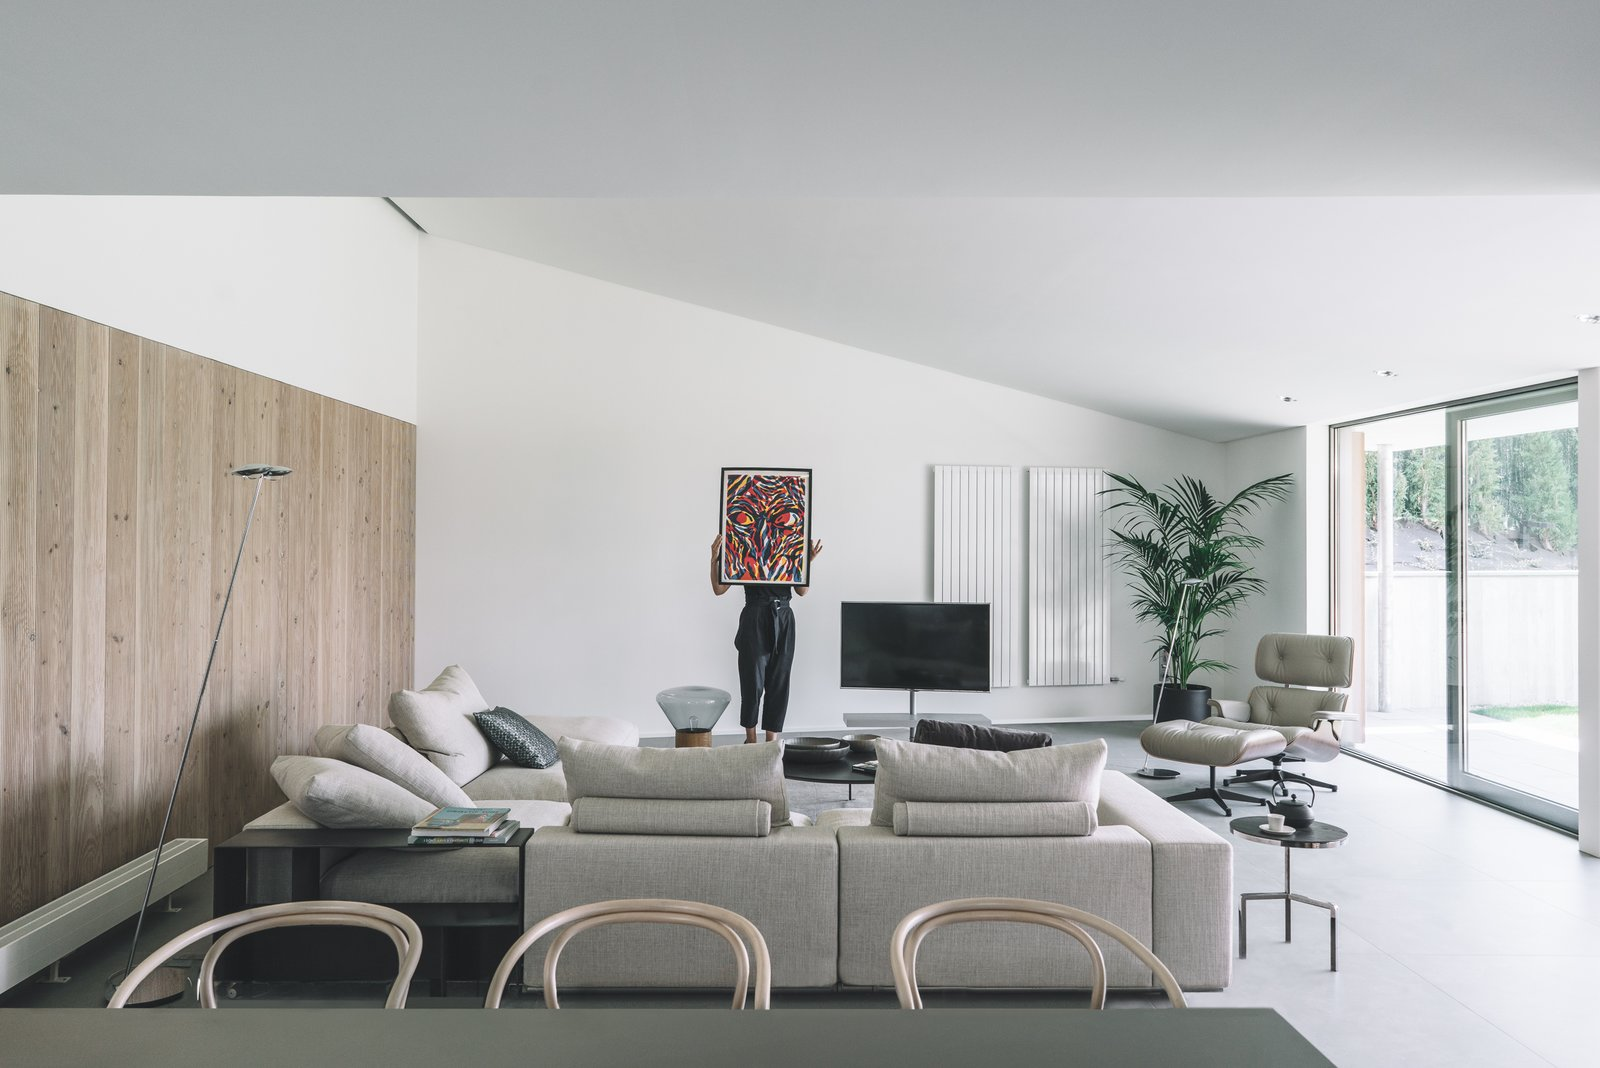 Chair, Coffee Tables, Wall Lighting, Ottomans, Sofa, End Tables, Porcelain Tile Floor, and Kitchen Interior view: Living Room  The Öcher House by MLMR Architecture Consultancy